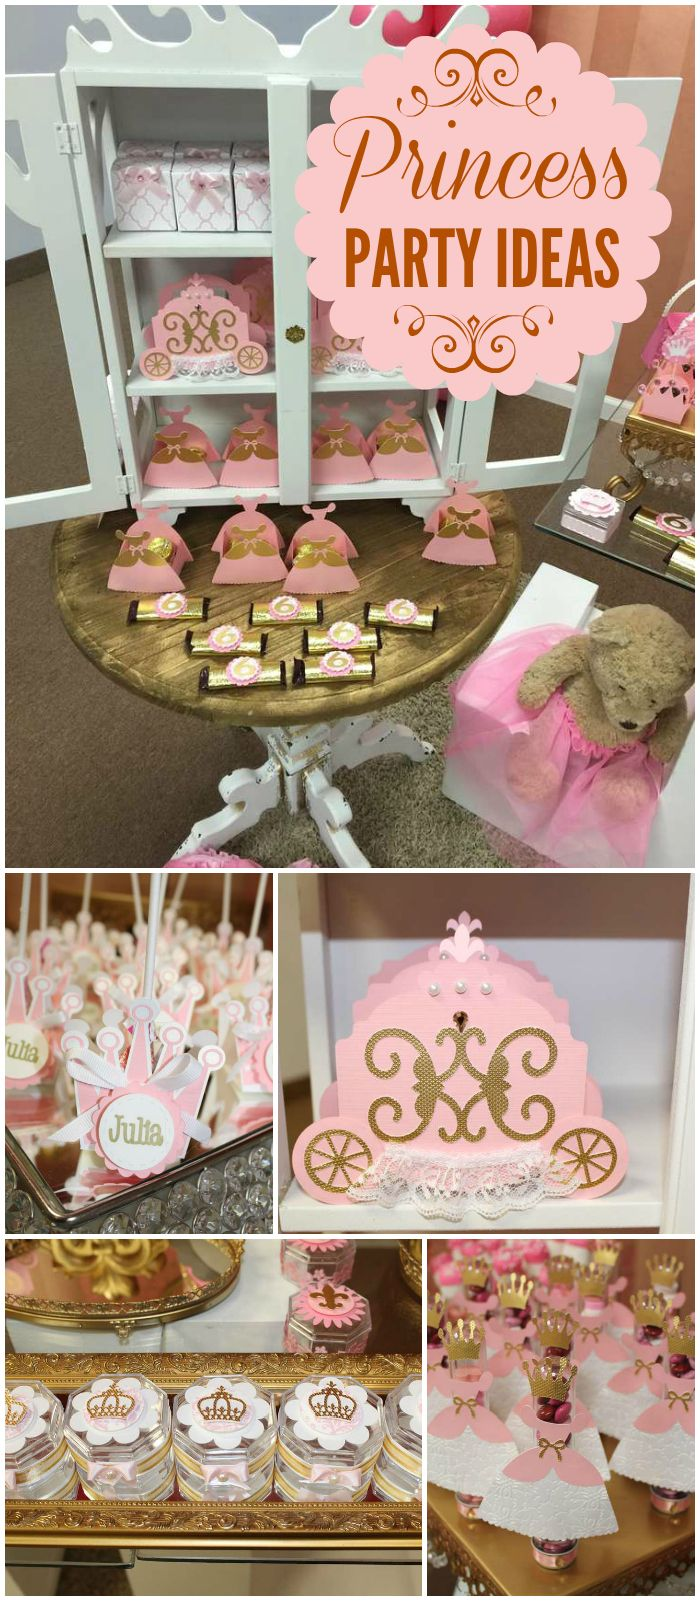 Here's a gorgeous princess party!  Pretty gold and pink royal favors! See more party planning ideas at CatchMyParty.com!